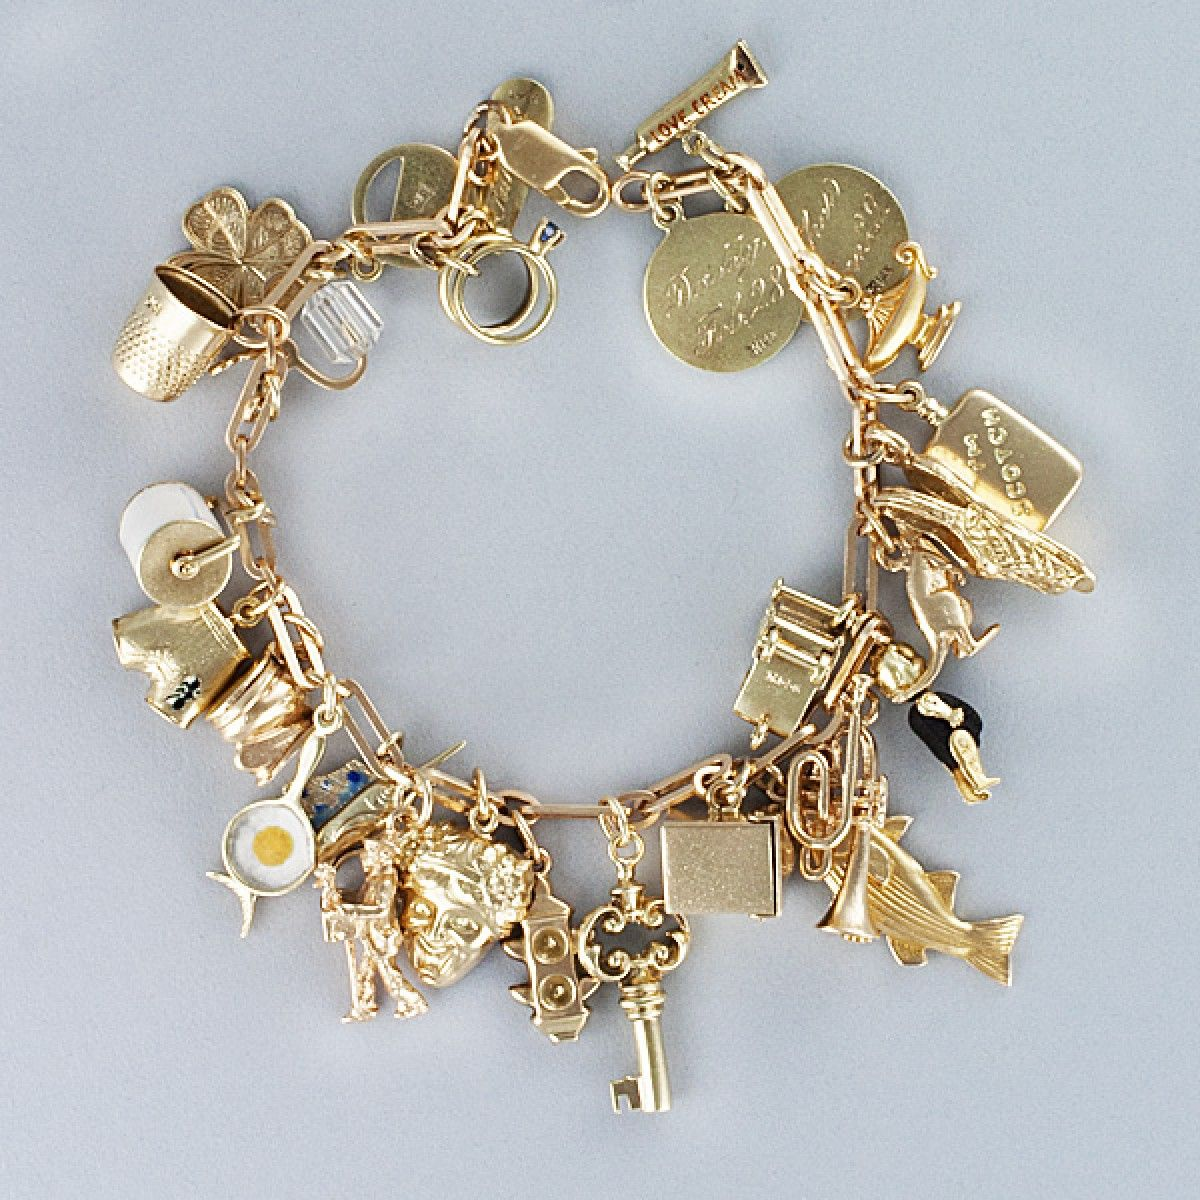 Assorted charm bracelet in 14k yellow gold. Length 7.5 inches...